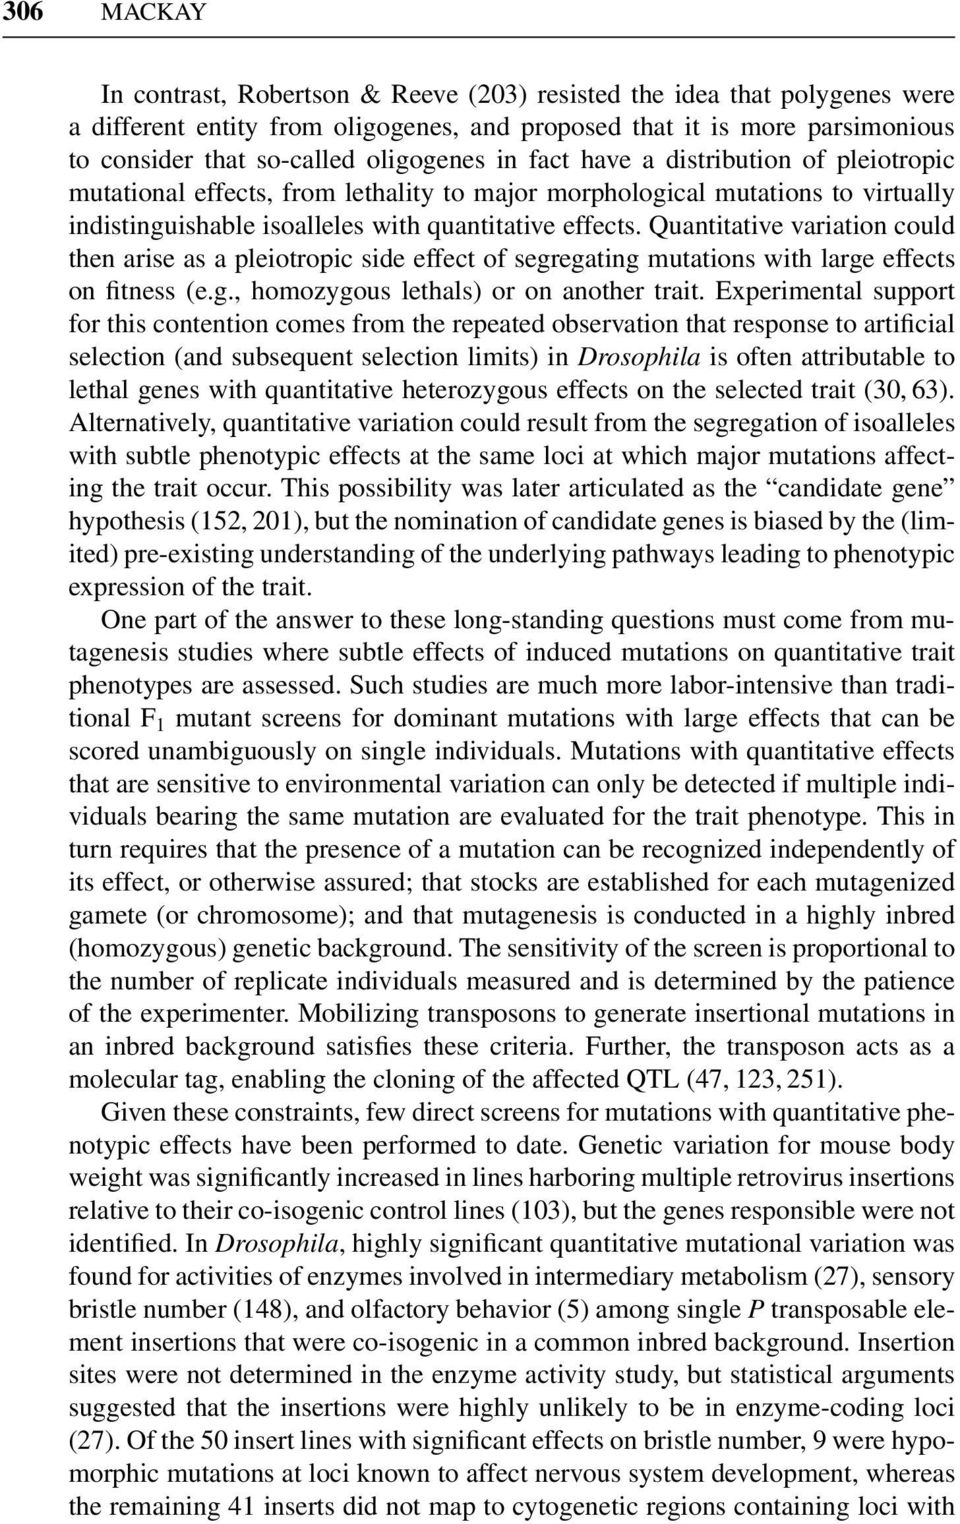 Quantitative variation could then arise as a pleiotropic side effect of segregating mutations with large effects on fitness (e.g., homozygous lethals) or on another trait.